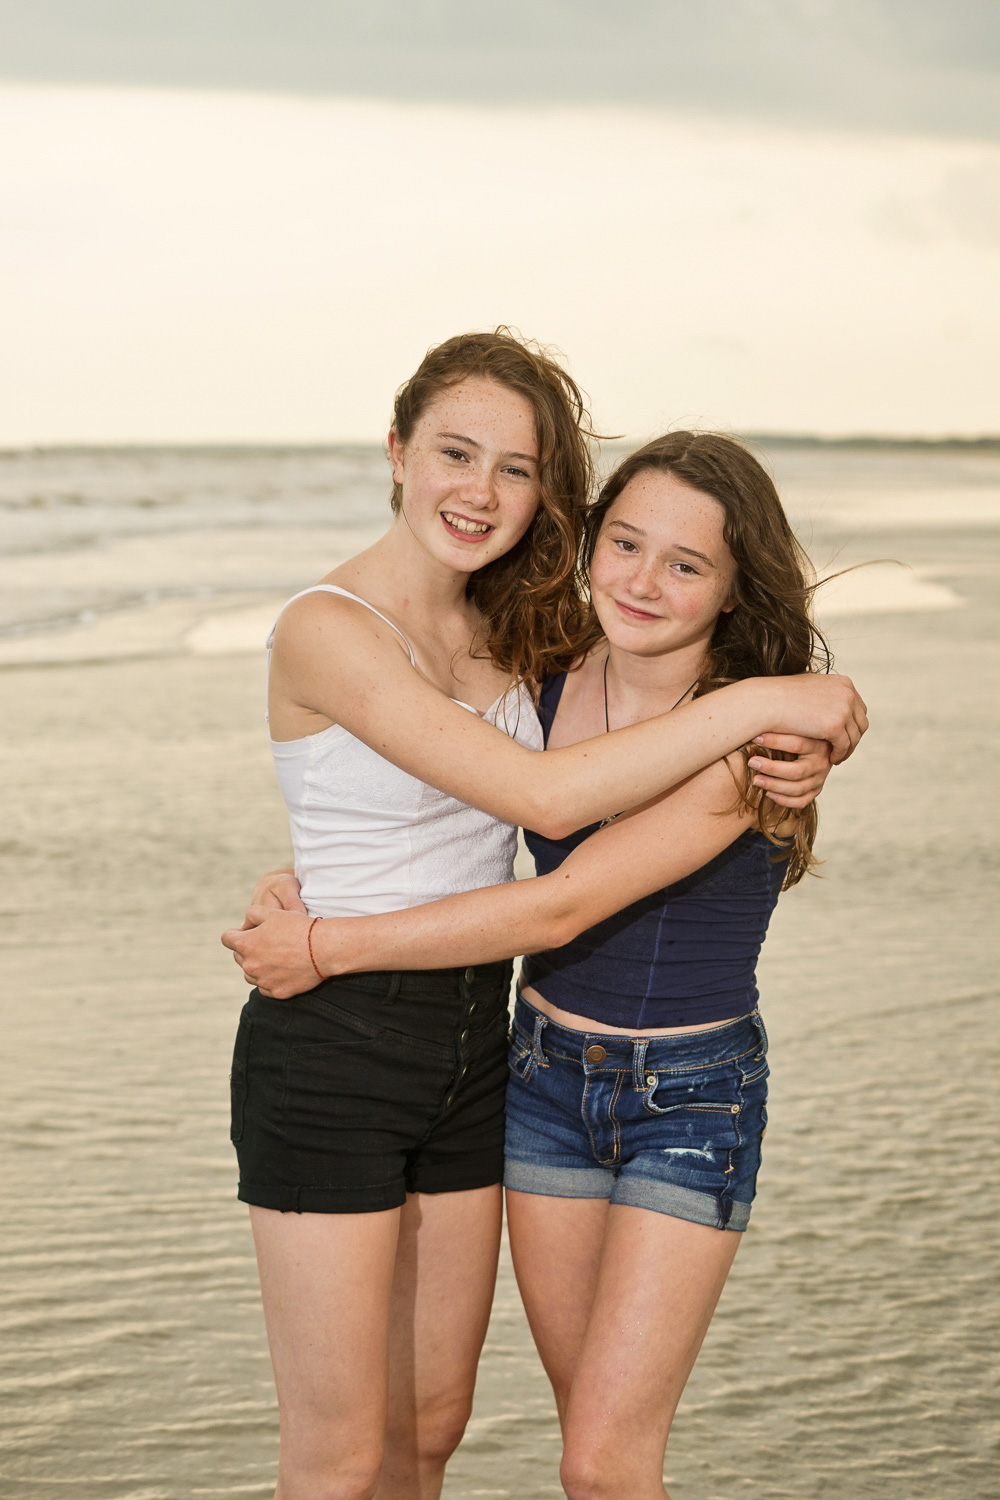 beach_portraits_beaufort-113.jpg